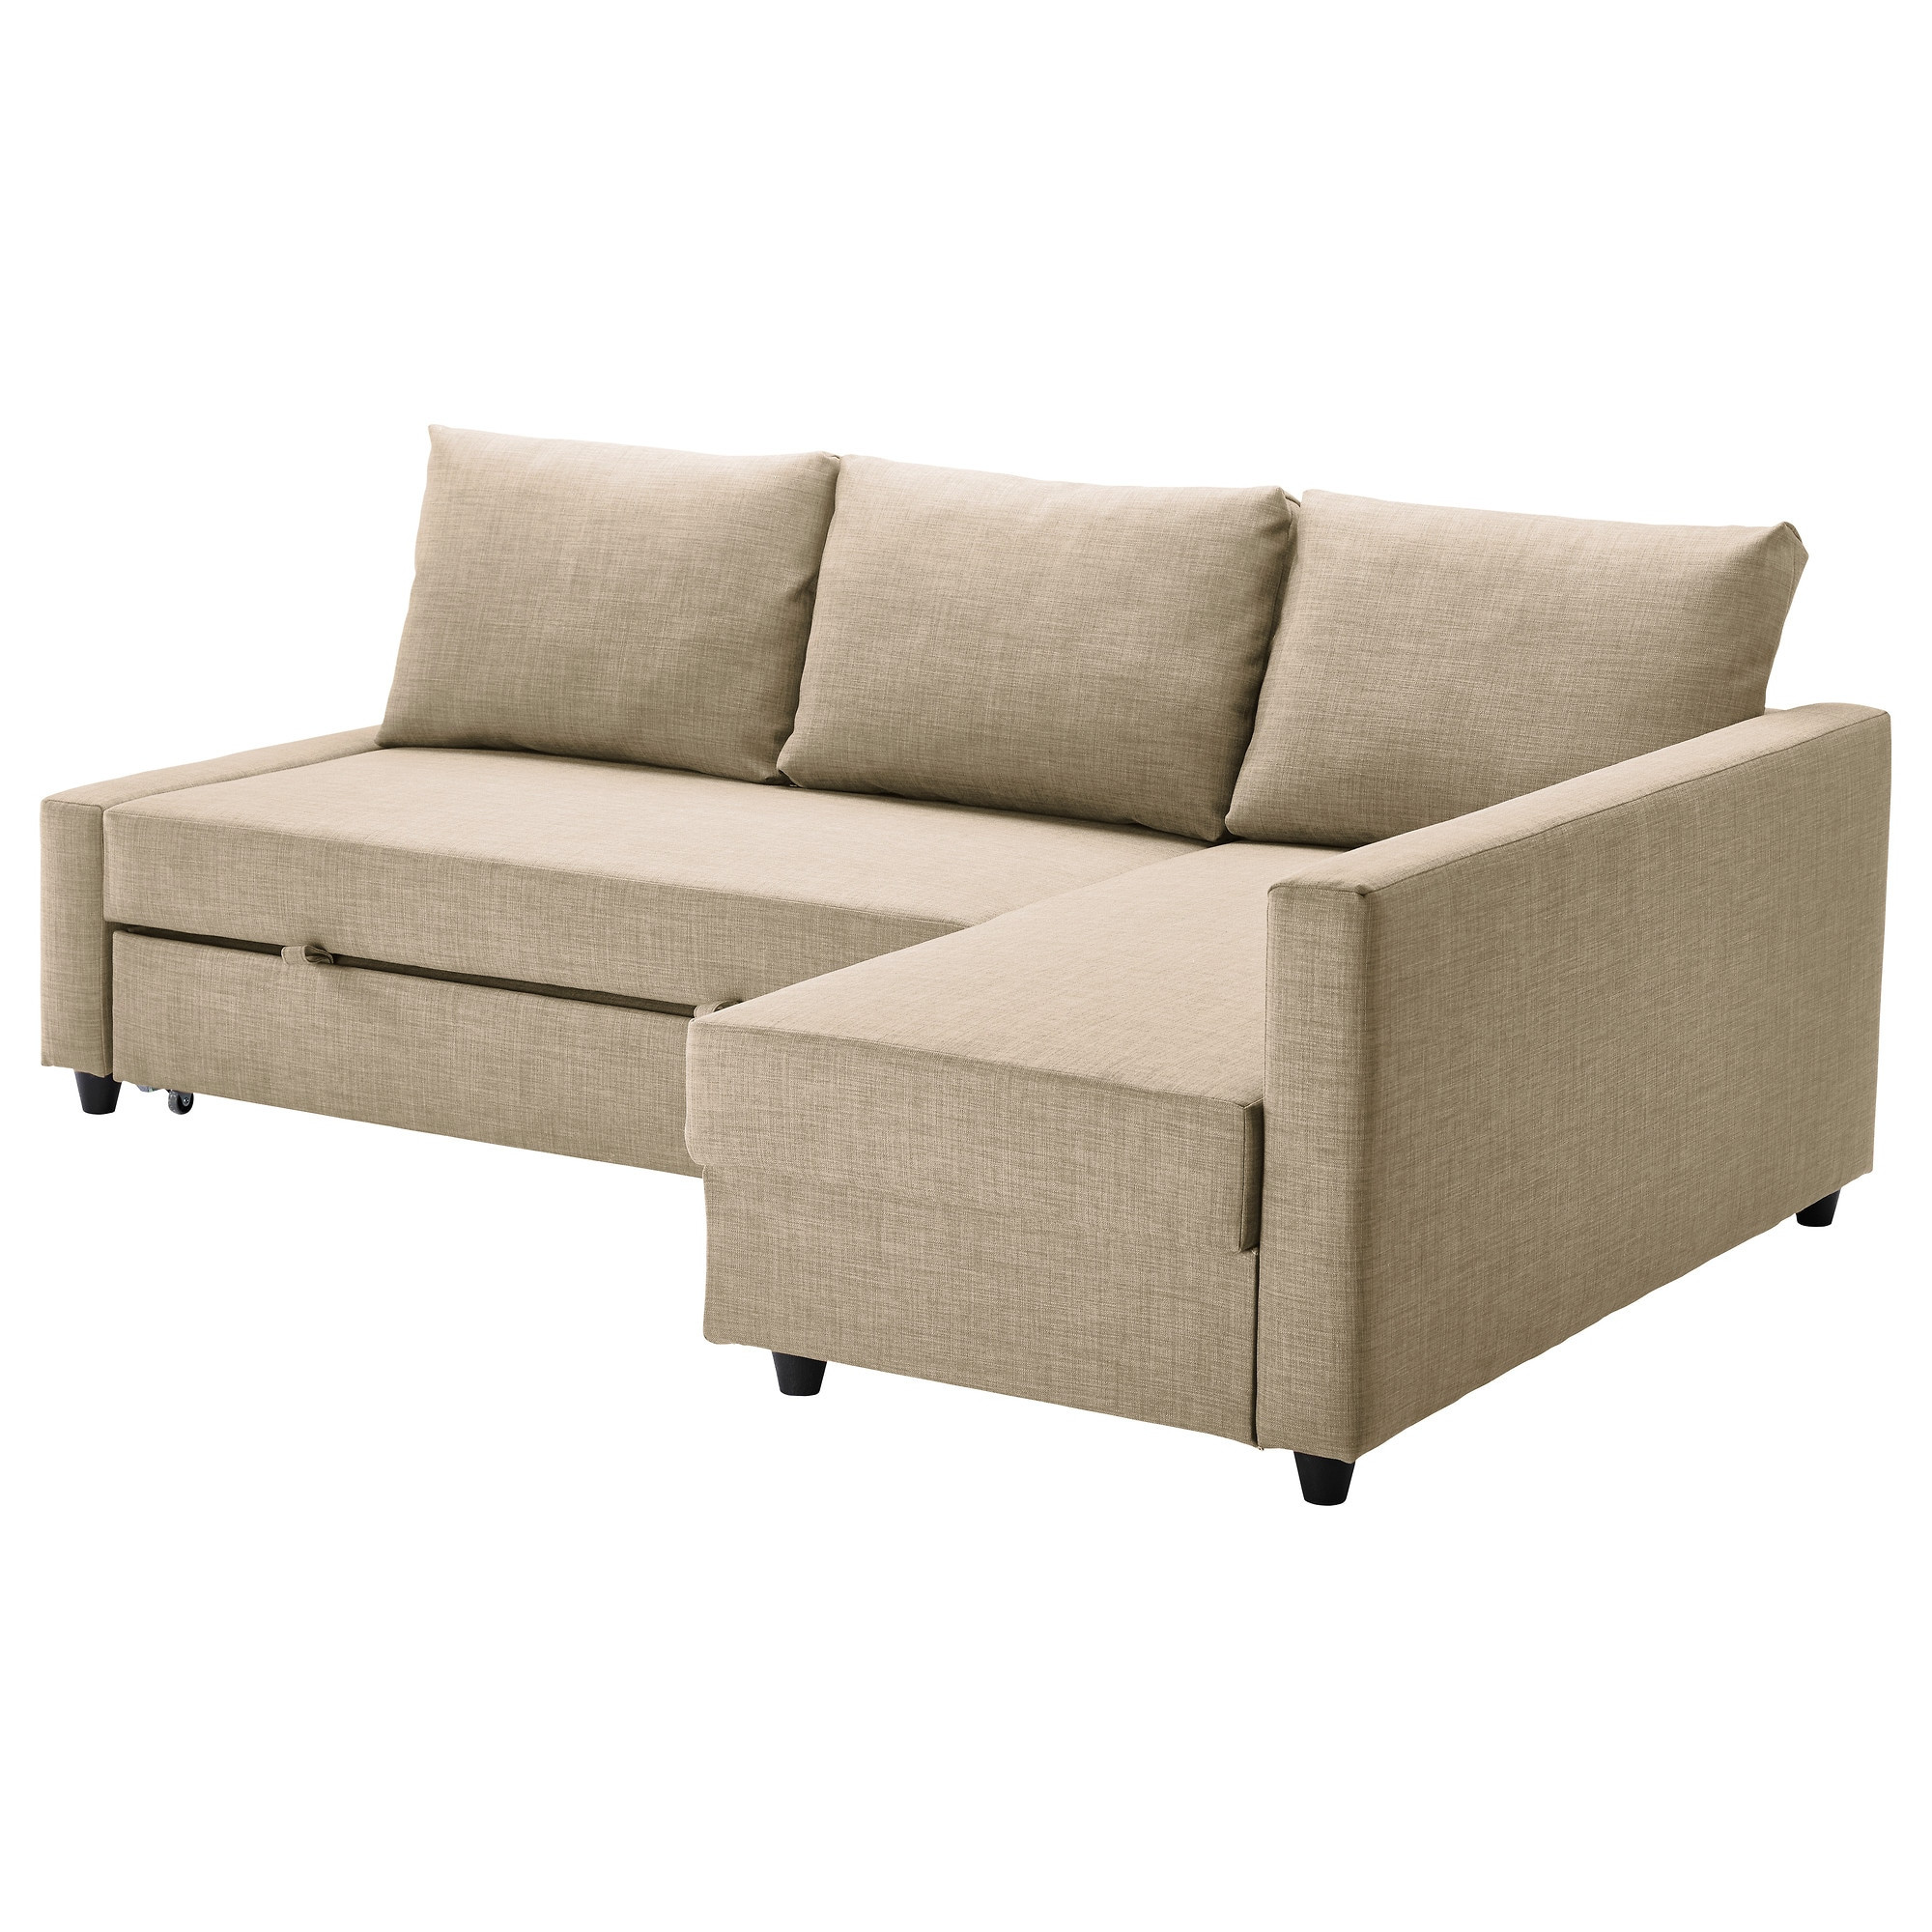 Best ideas about Ikea Sectional Sofa . Save or Pin FRIHETEN Corner sofa bed with storage Skiftebo beige IKEA Now.